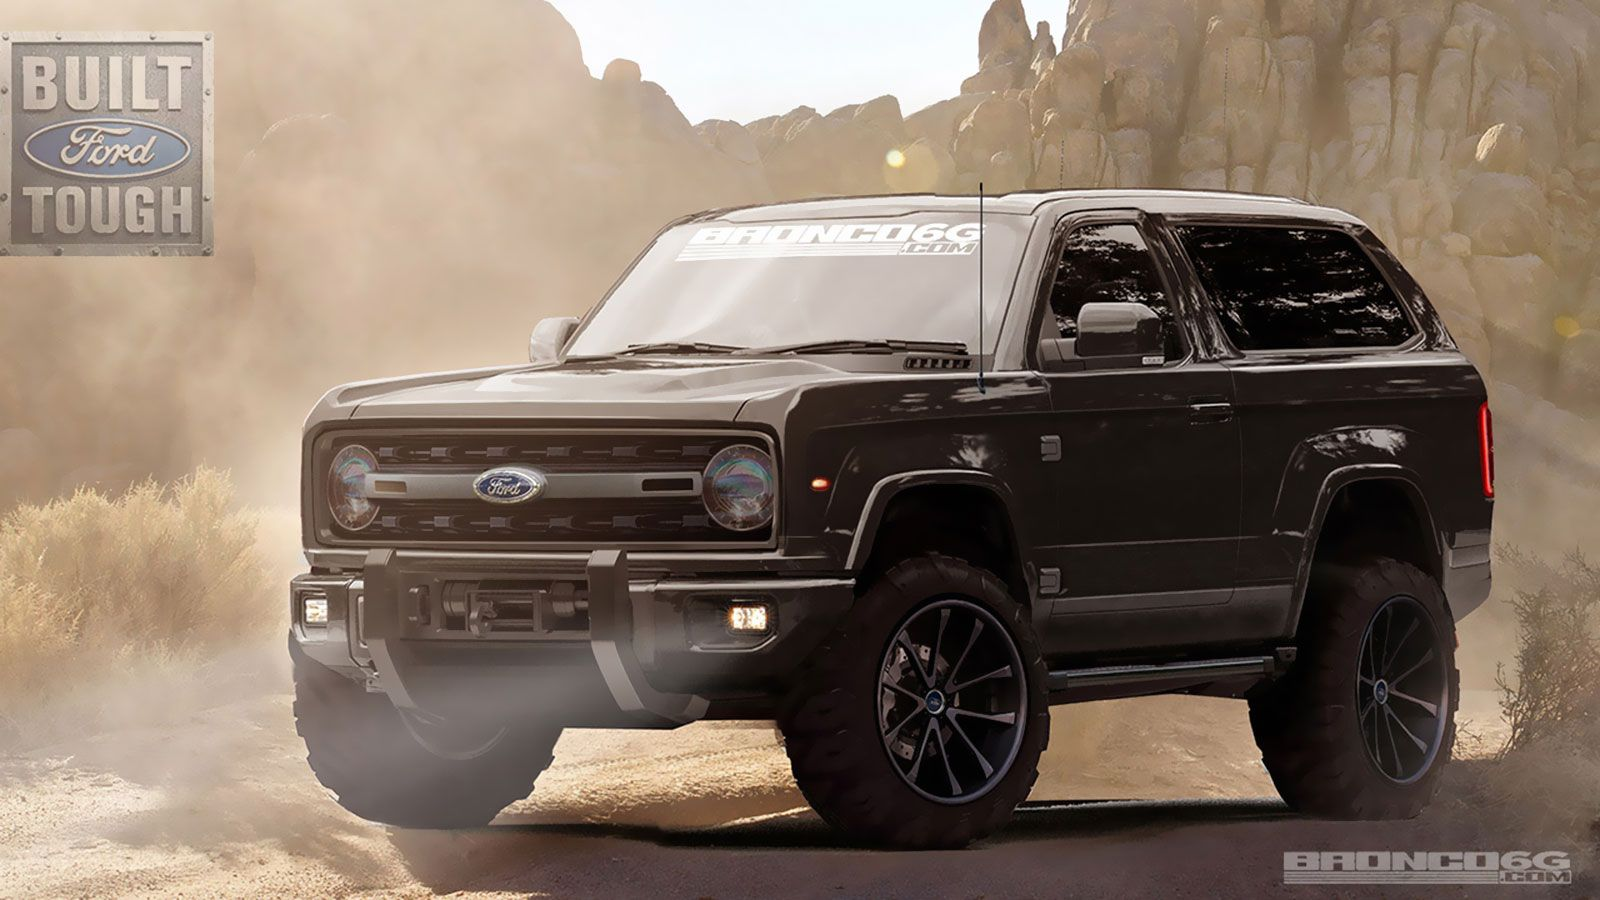 2020 Ford Bronco Concept By Bronco6g Ford Bronco Ford Bronco Concept Bronco Concept